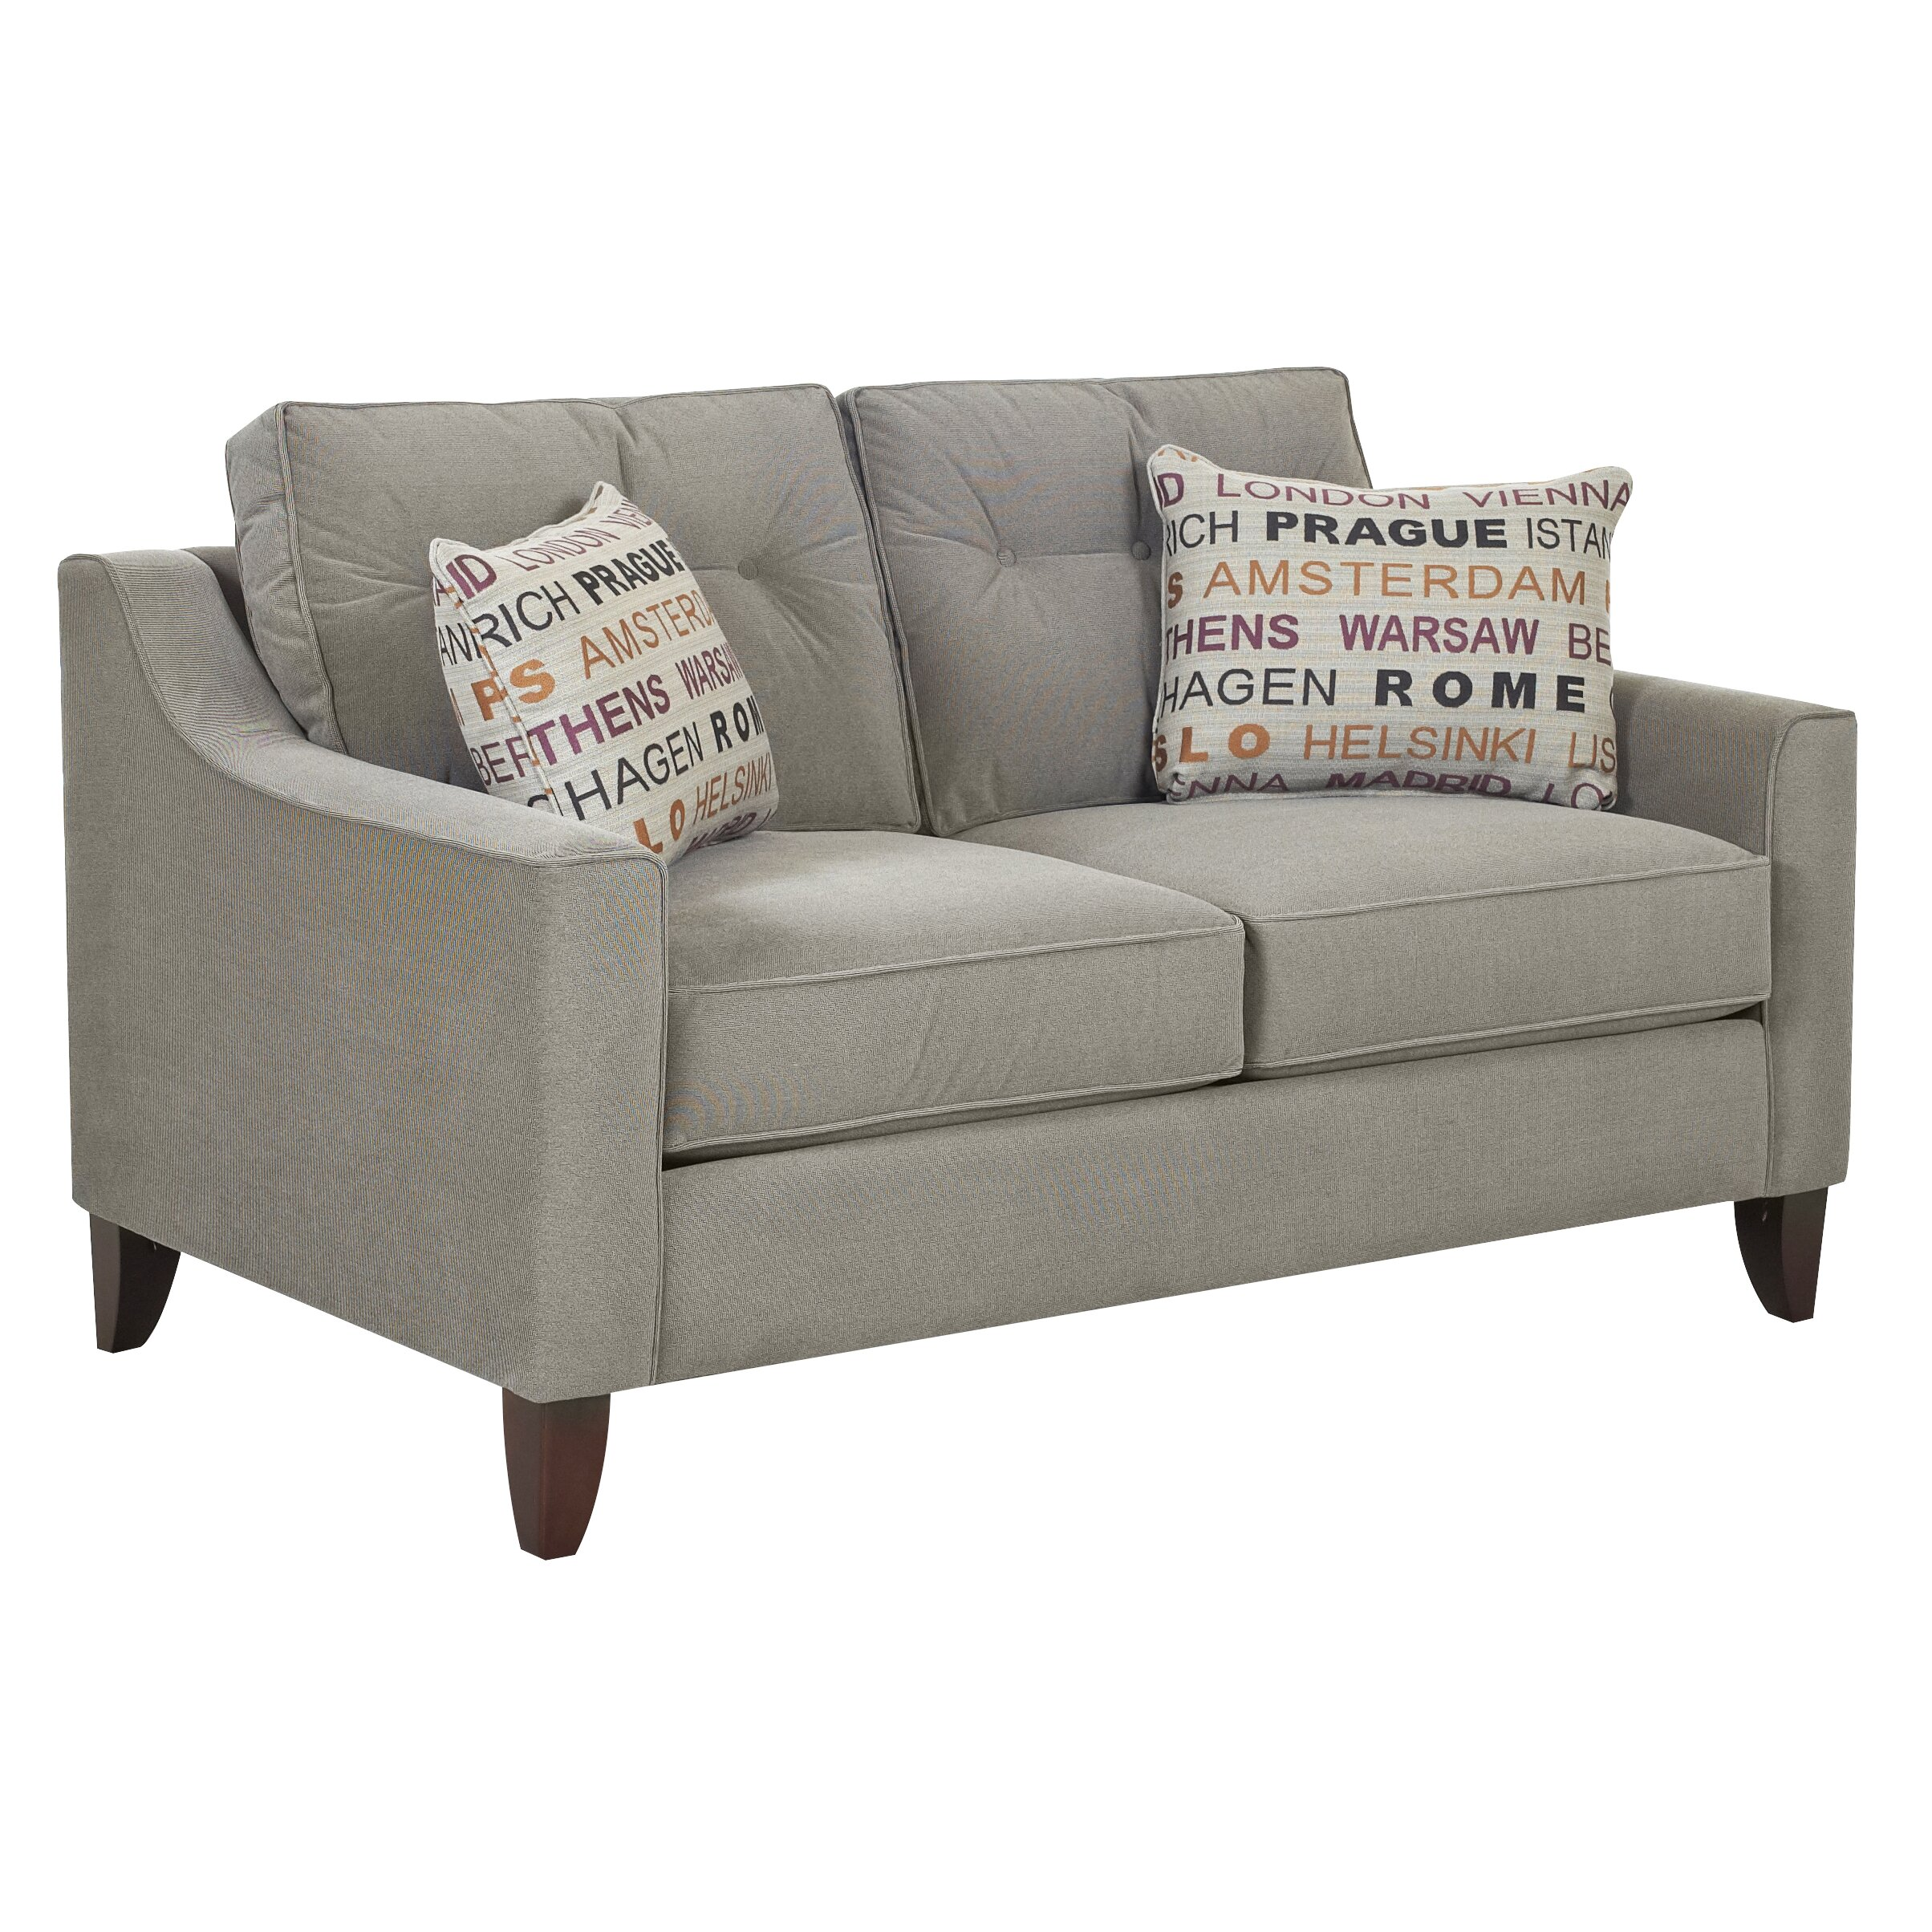 Klaussner Furniture Dartmouth Loveseat Wayfair